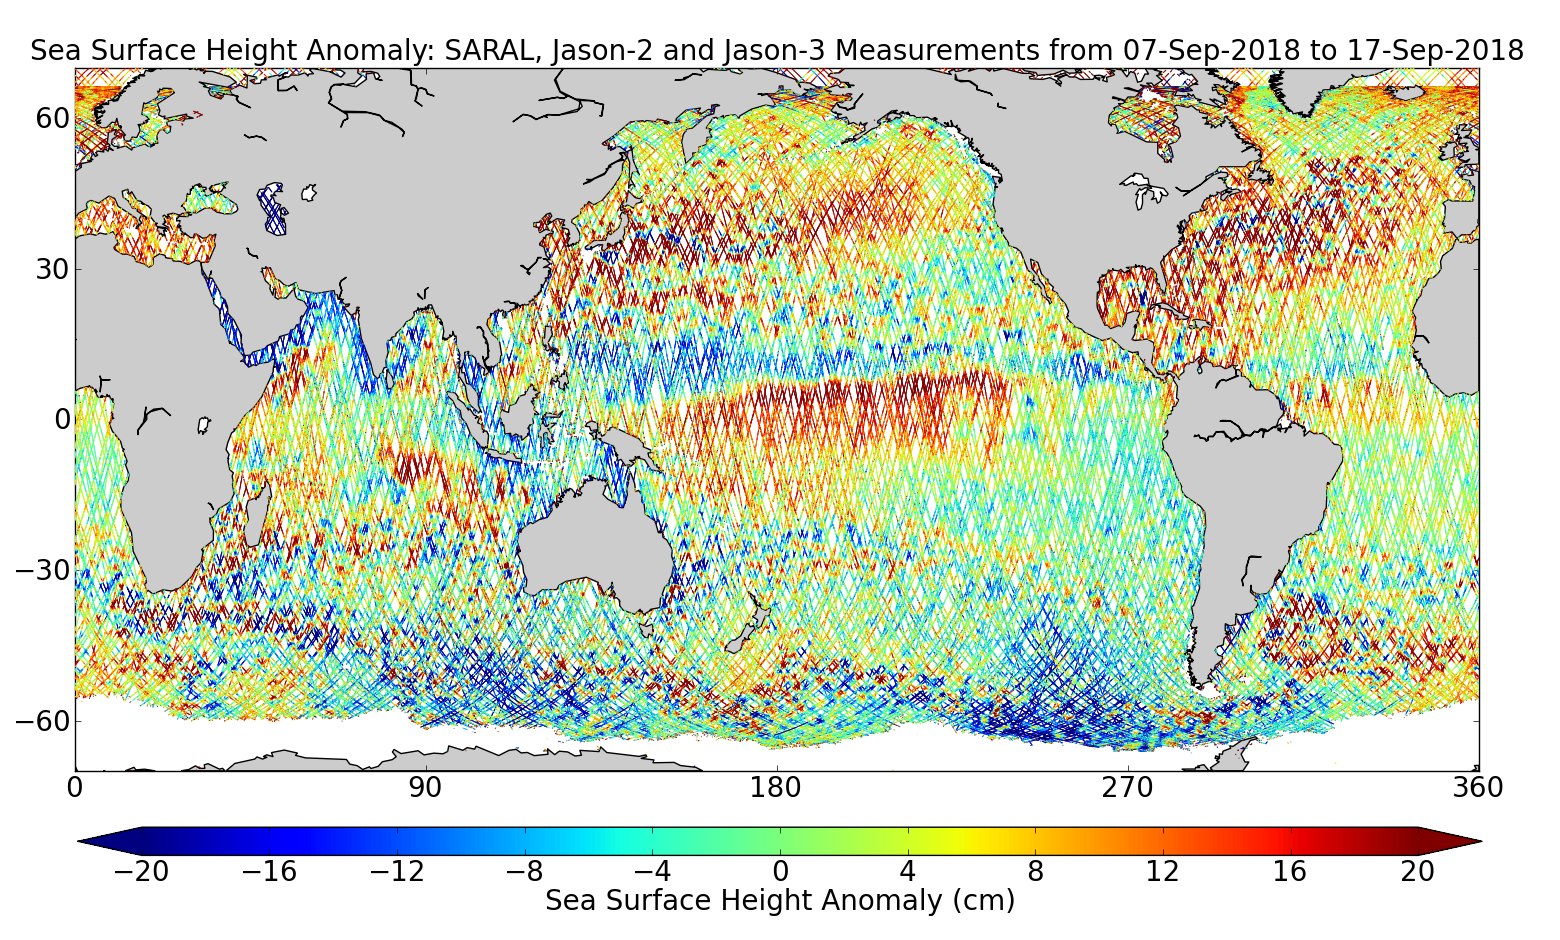 Sea Surface Height Anomaly: SARAL, Jason-2 and Jason-3 Measurements from 07-Sep-2018 to 17-Sep-2018